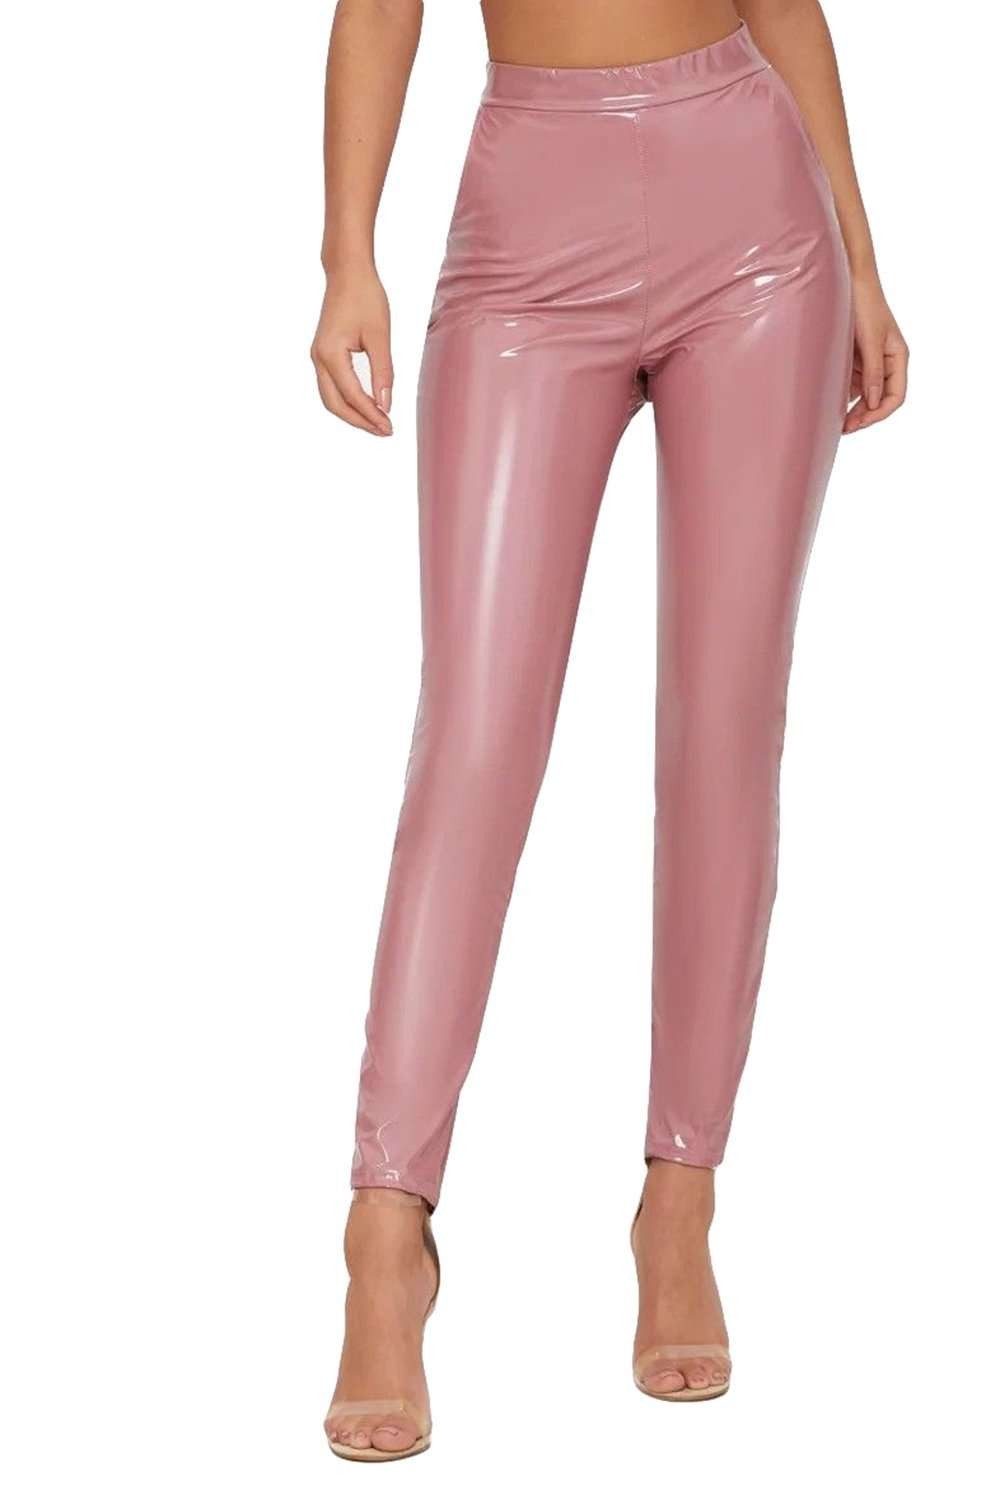 Millie High Shine Vinyl Leggings - bejealous-com